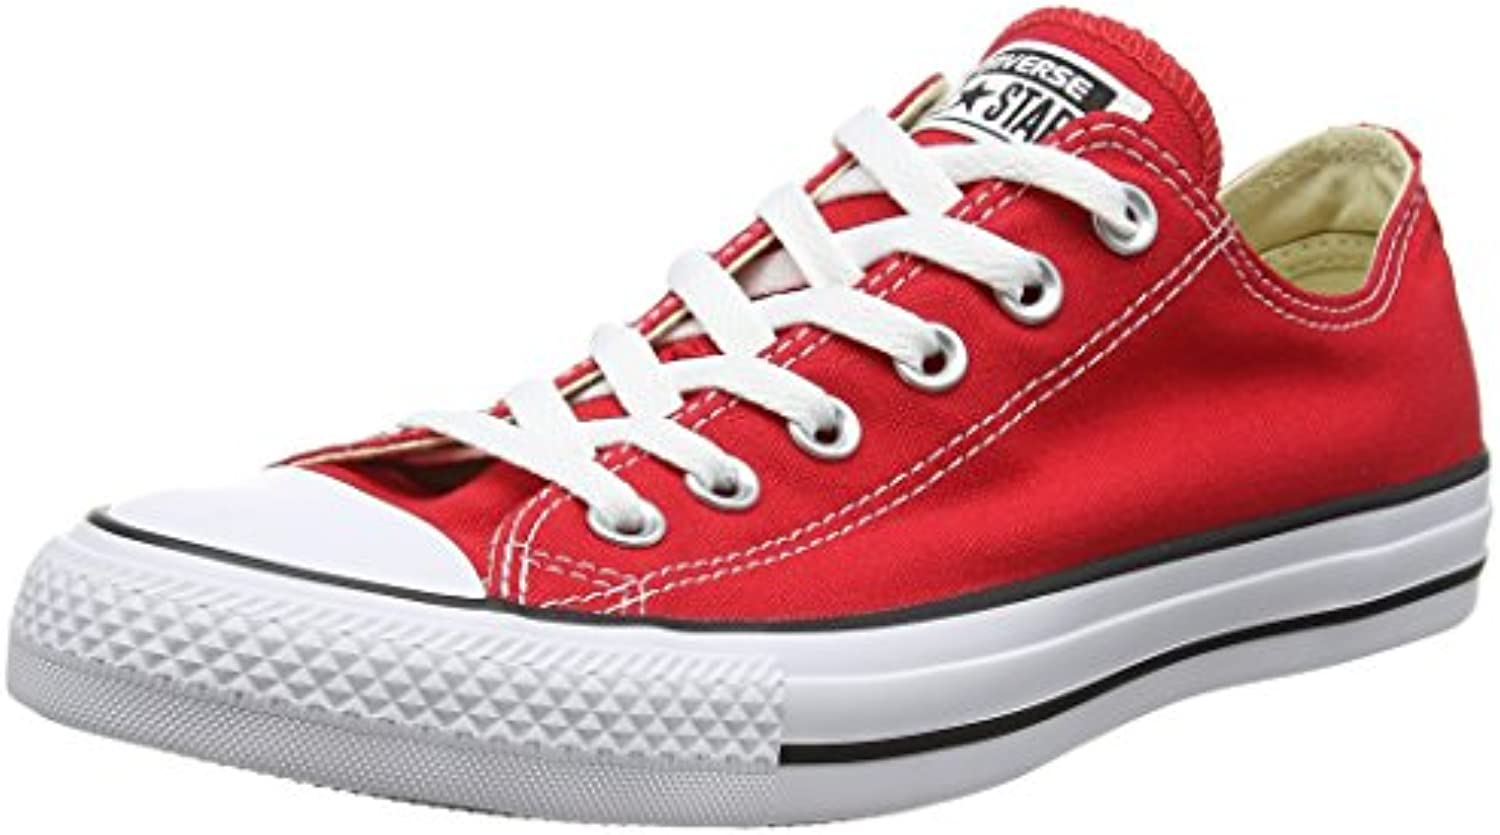 Converse Herren Chck Taylor All Star OX Sneakers